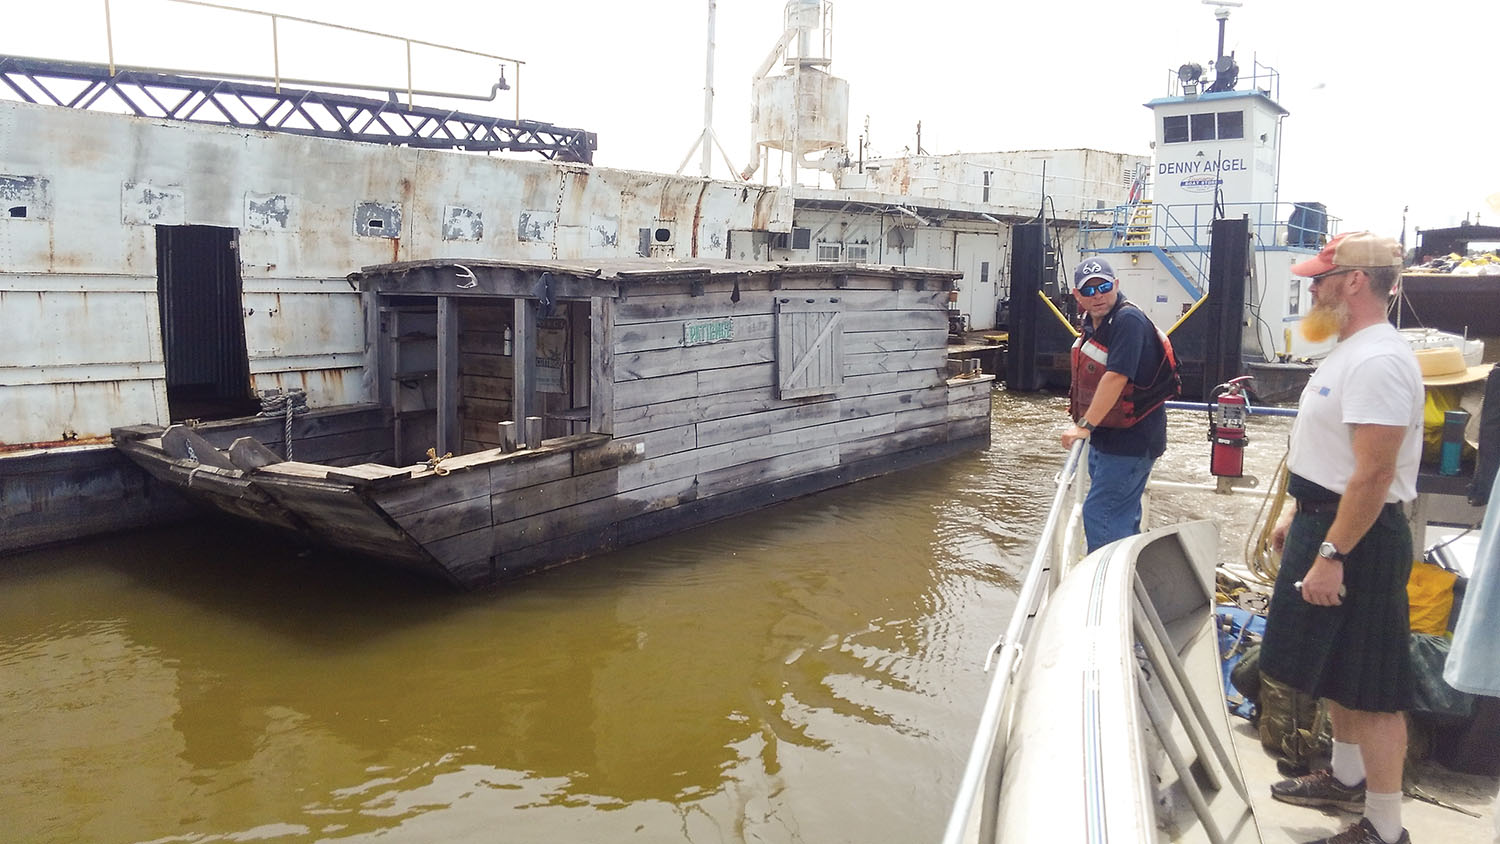 The replica flatboat Patience moored at the Economy Boat docks in Wood River, Ill.; a member of boat-builder Scott Mandrell's crew looks on. (Photo courtesy of Scott Mandrell)